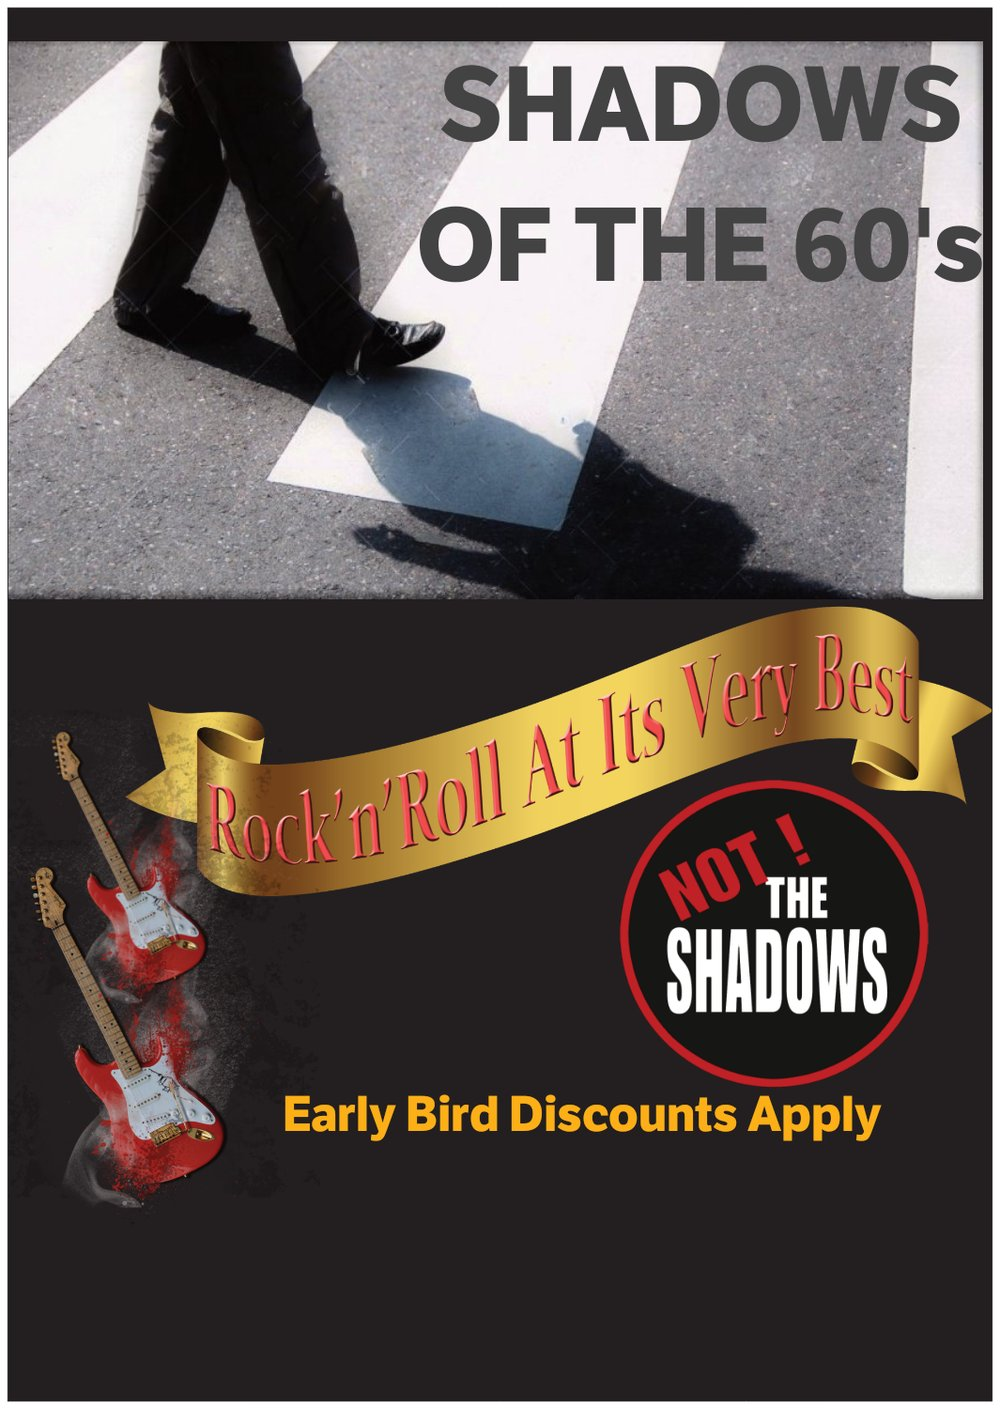 Shadows of the 60s